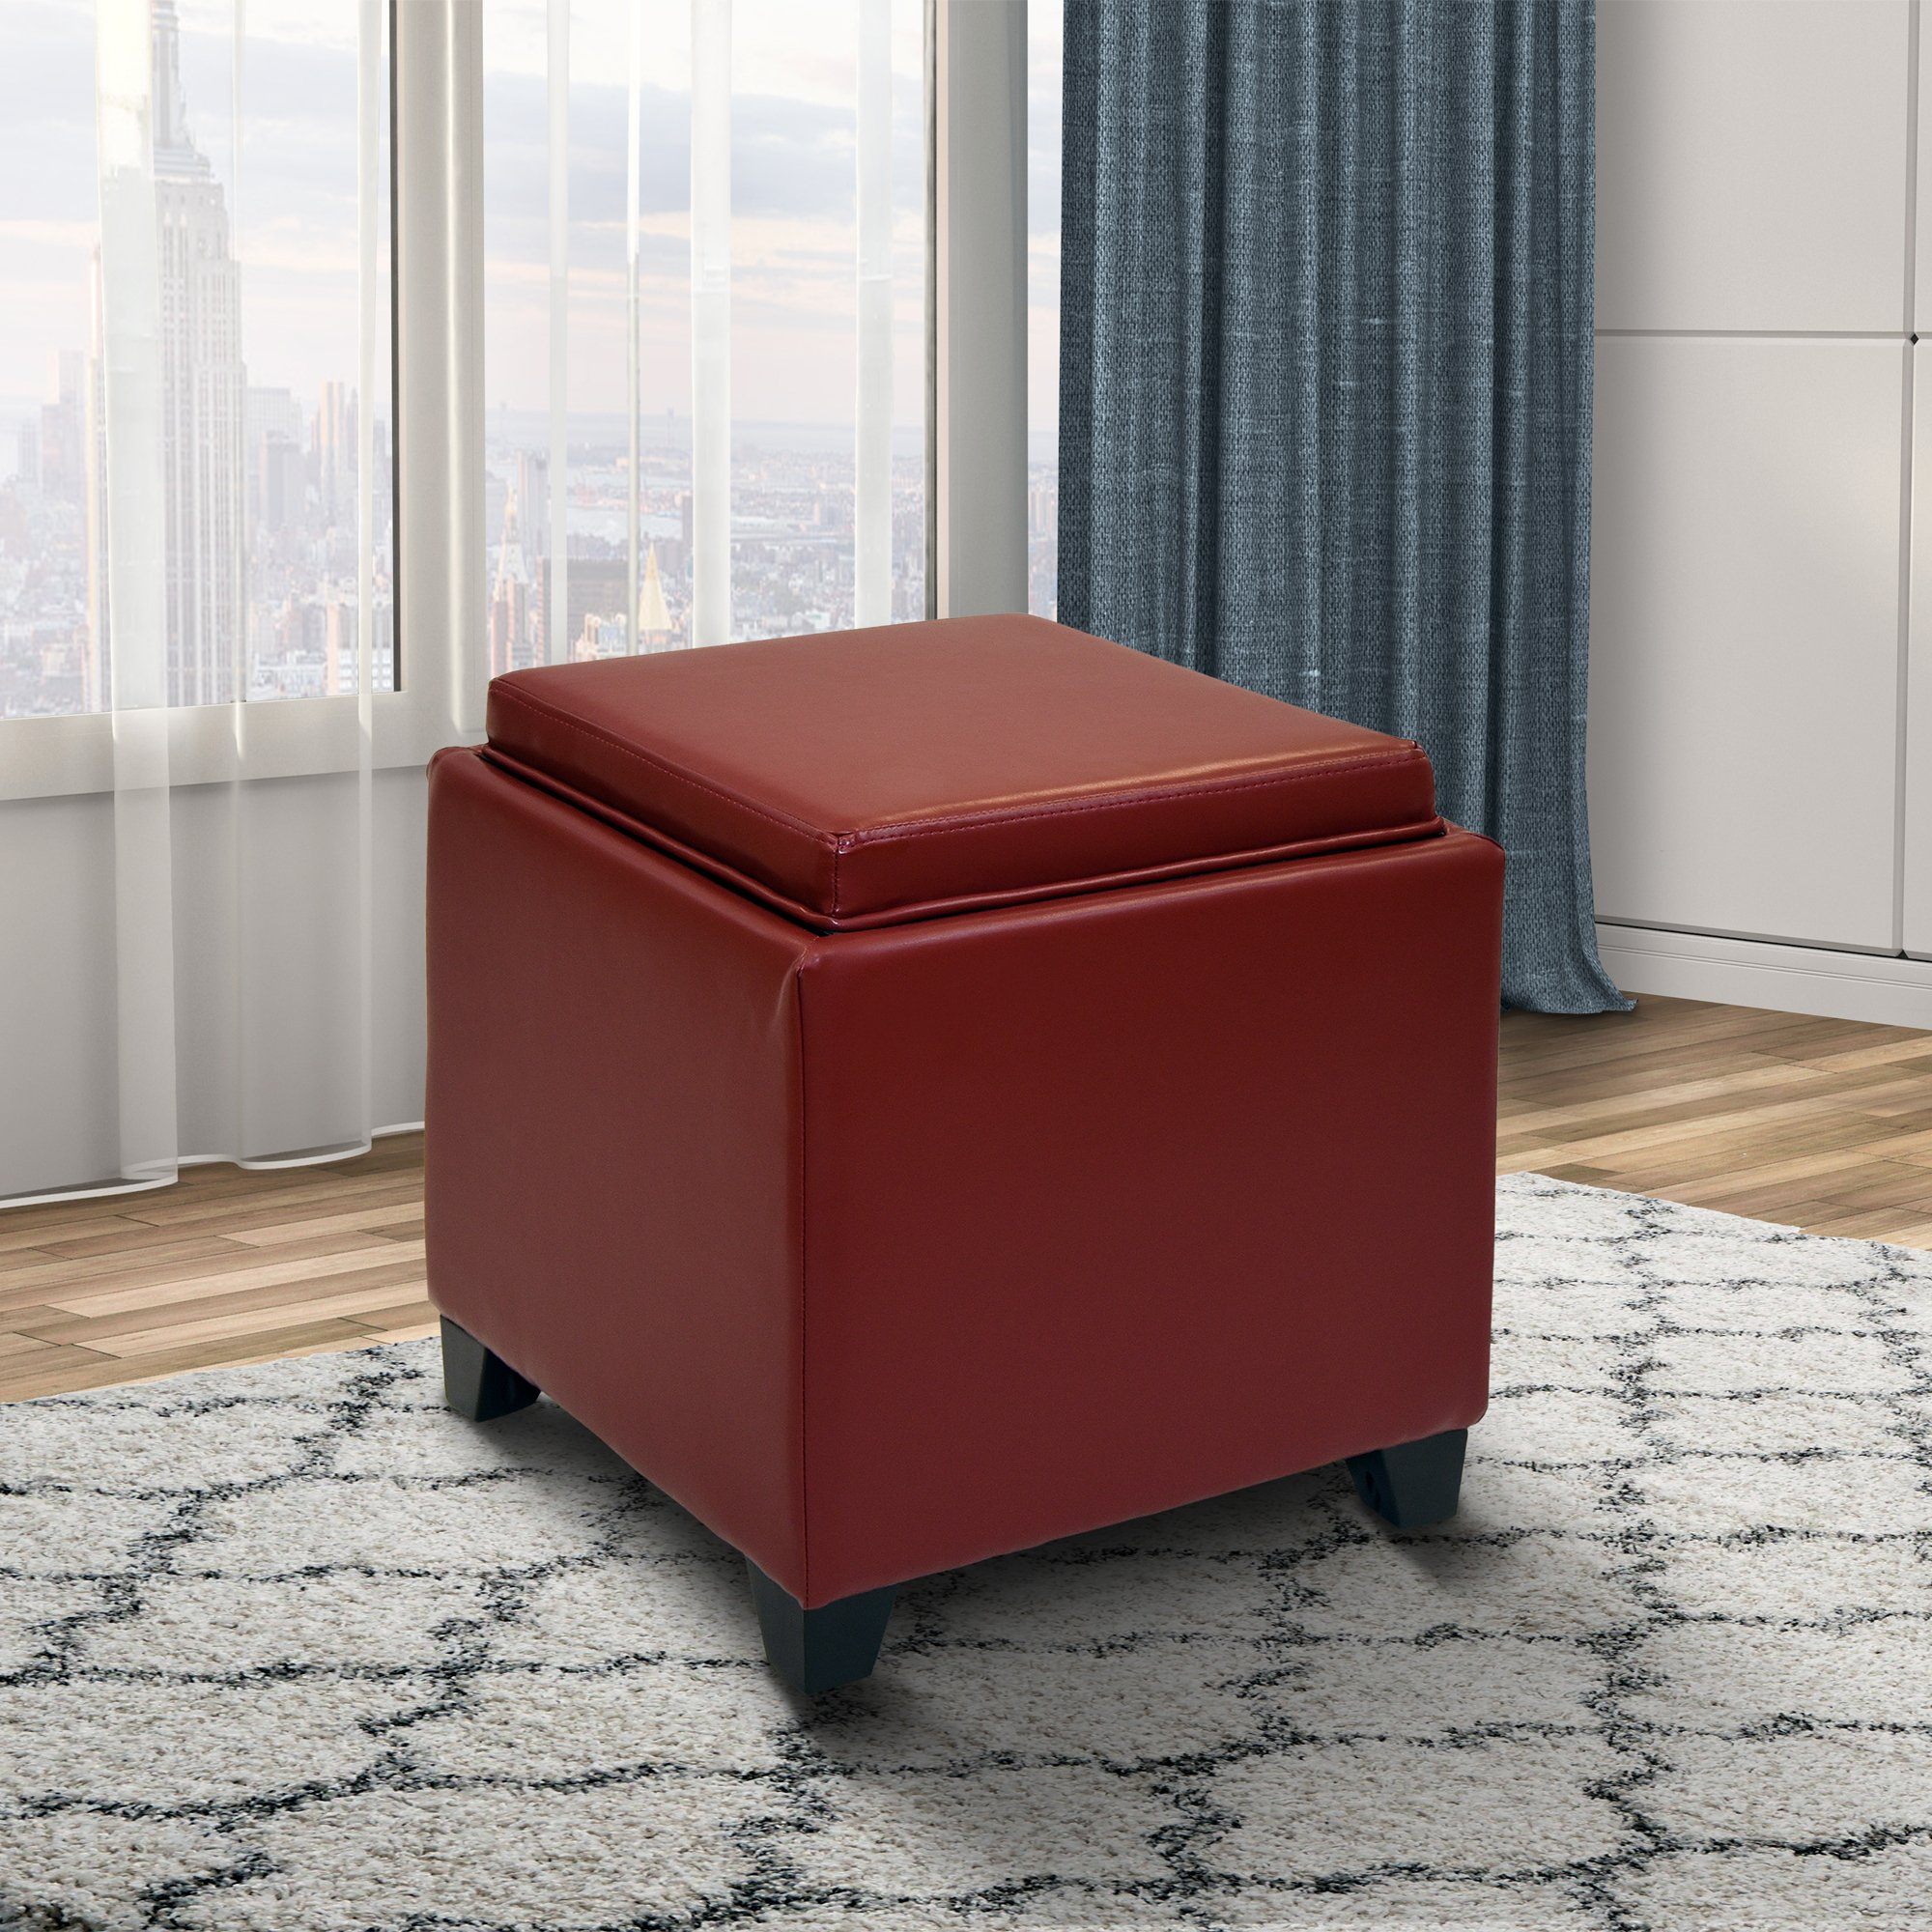 Armen Living LC530OTLERE Rainbow Ottoman in Red Bonded Leather and Black Wood Finish